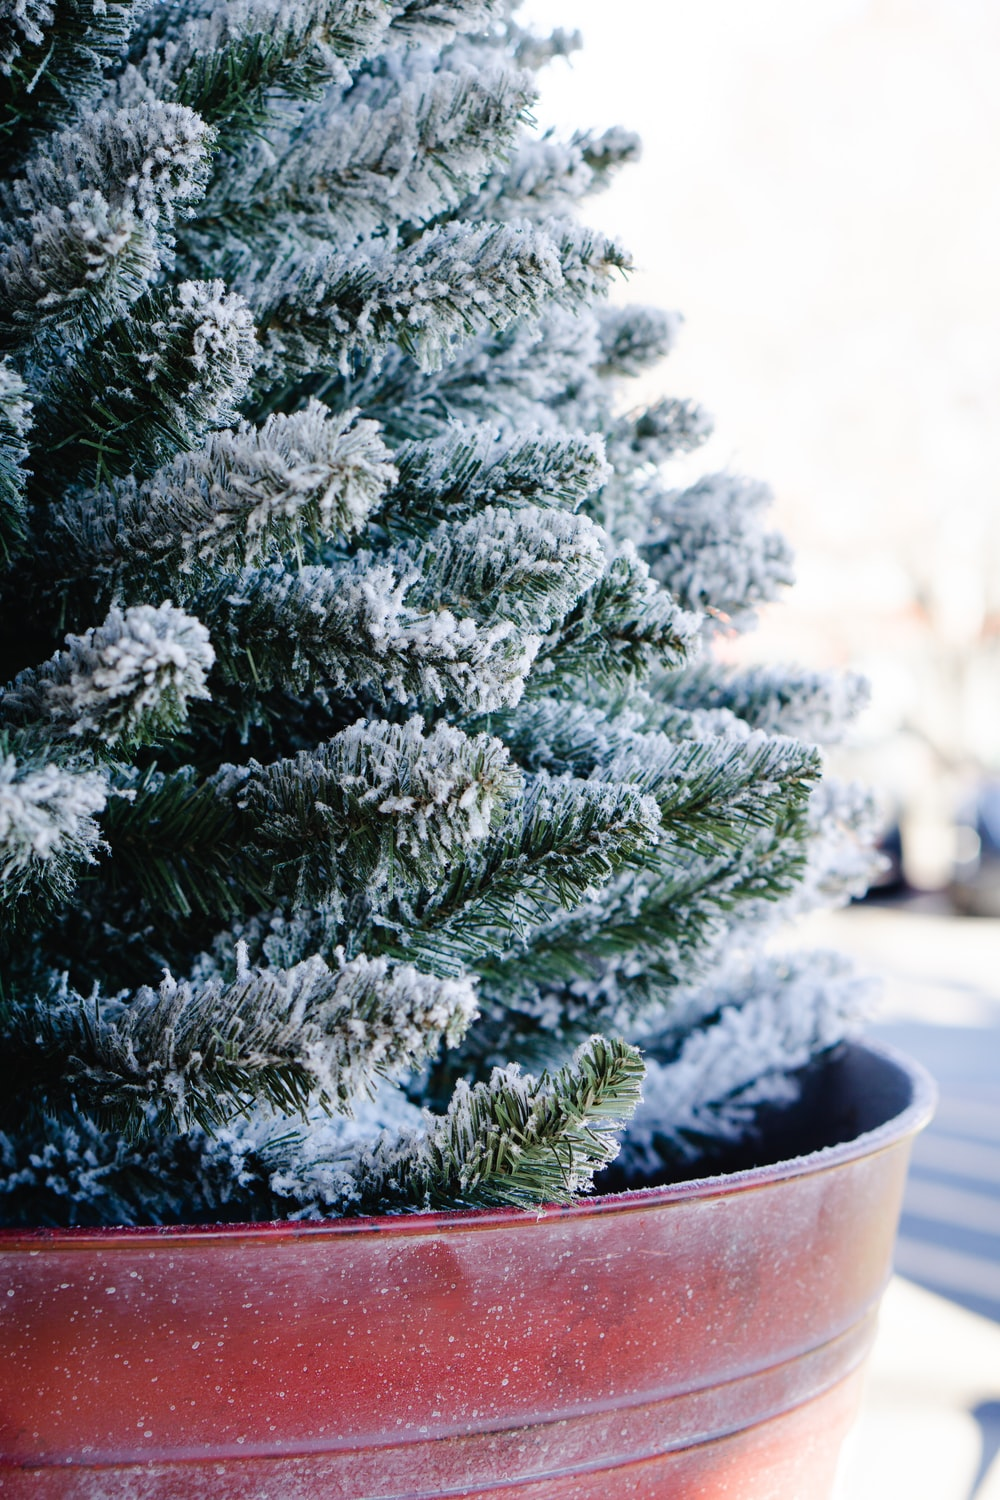 snow covered pine plant